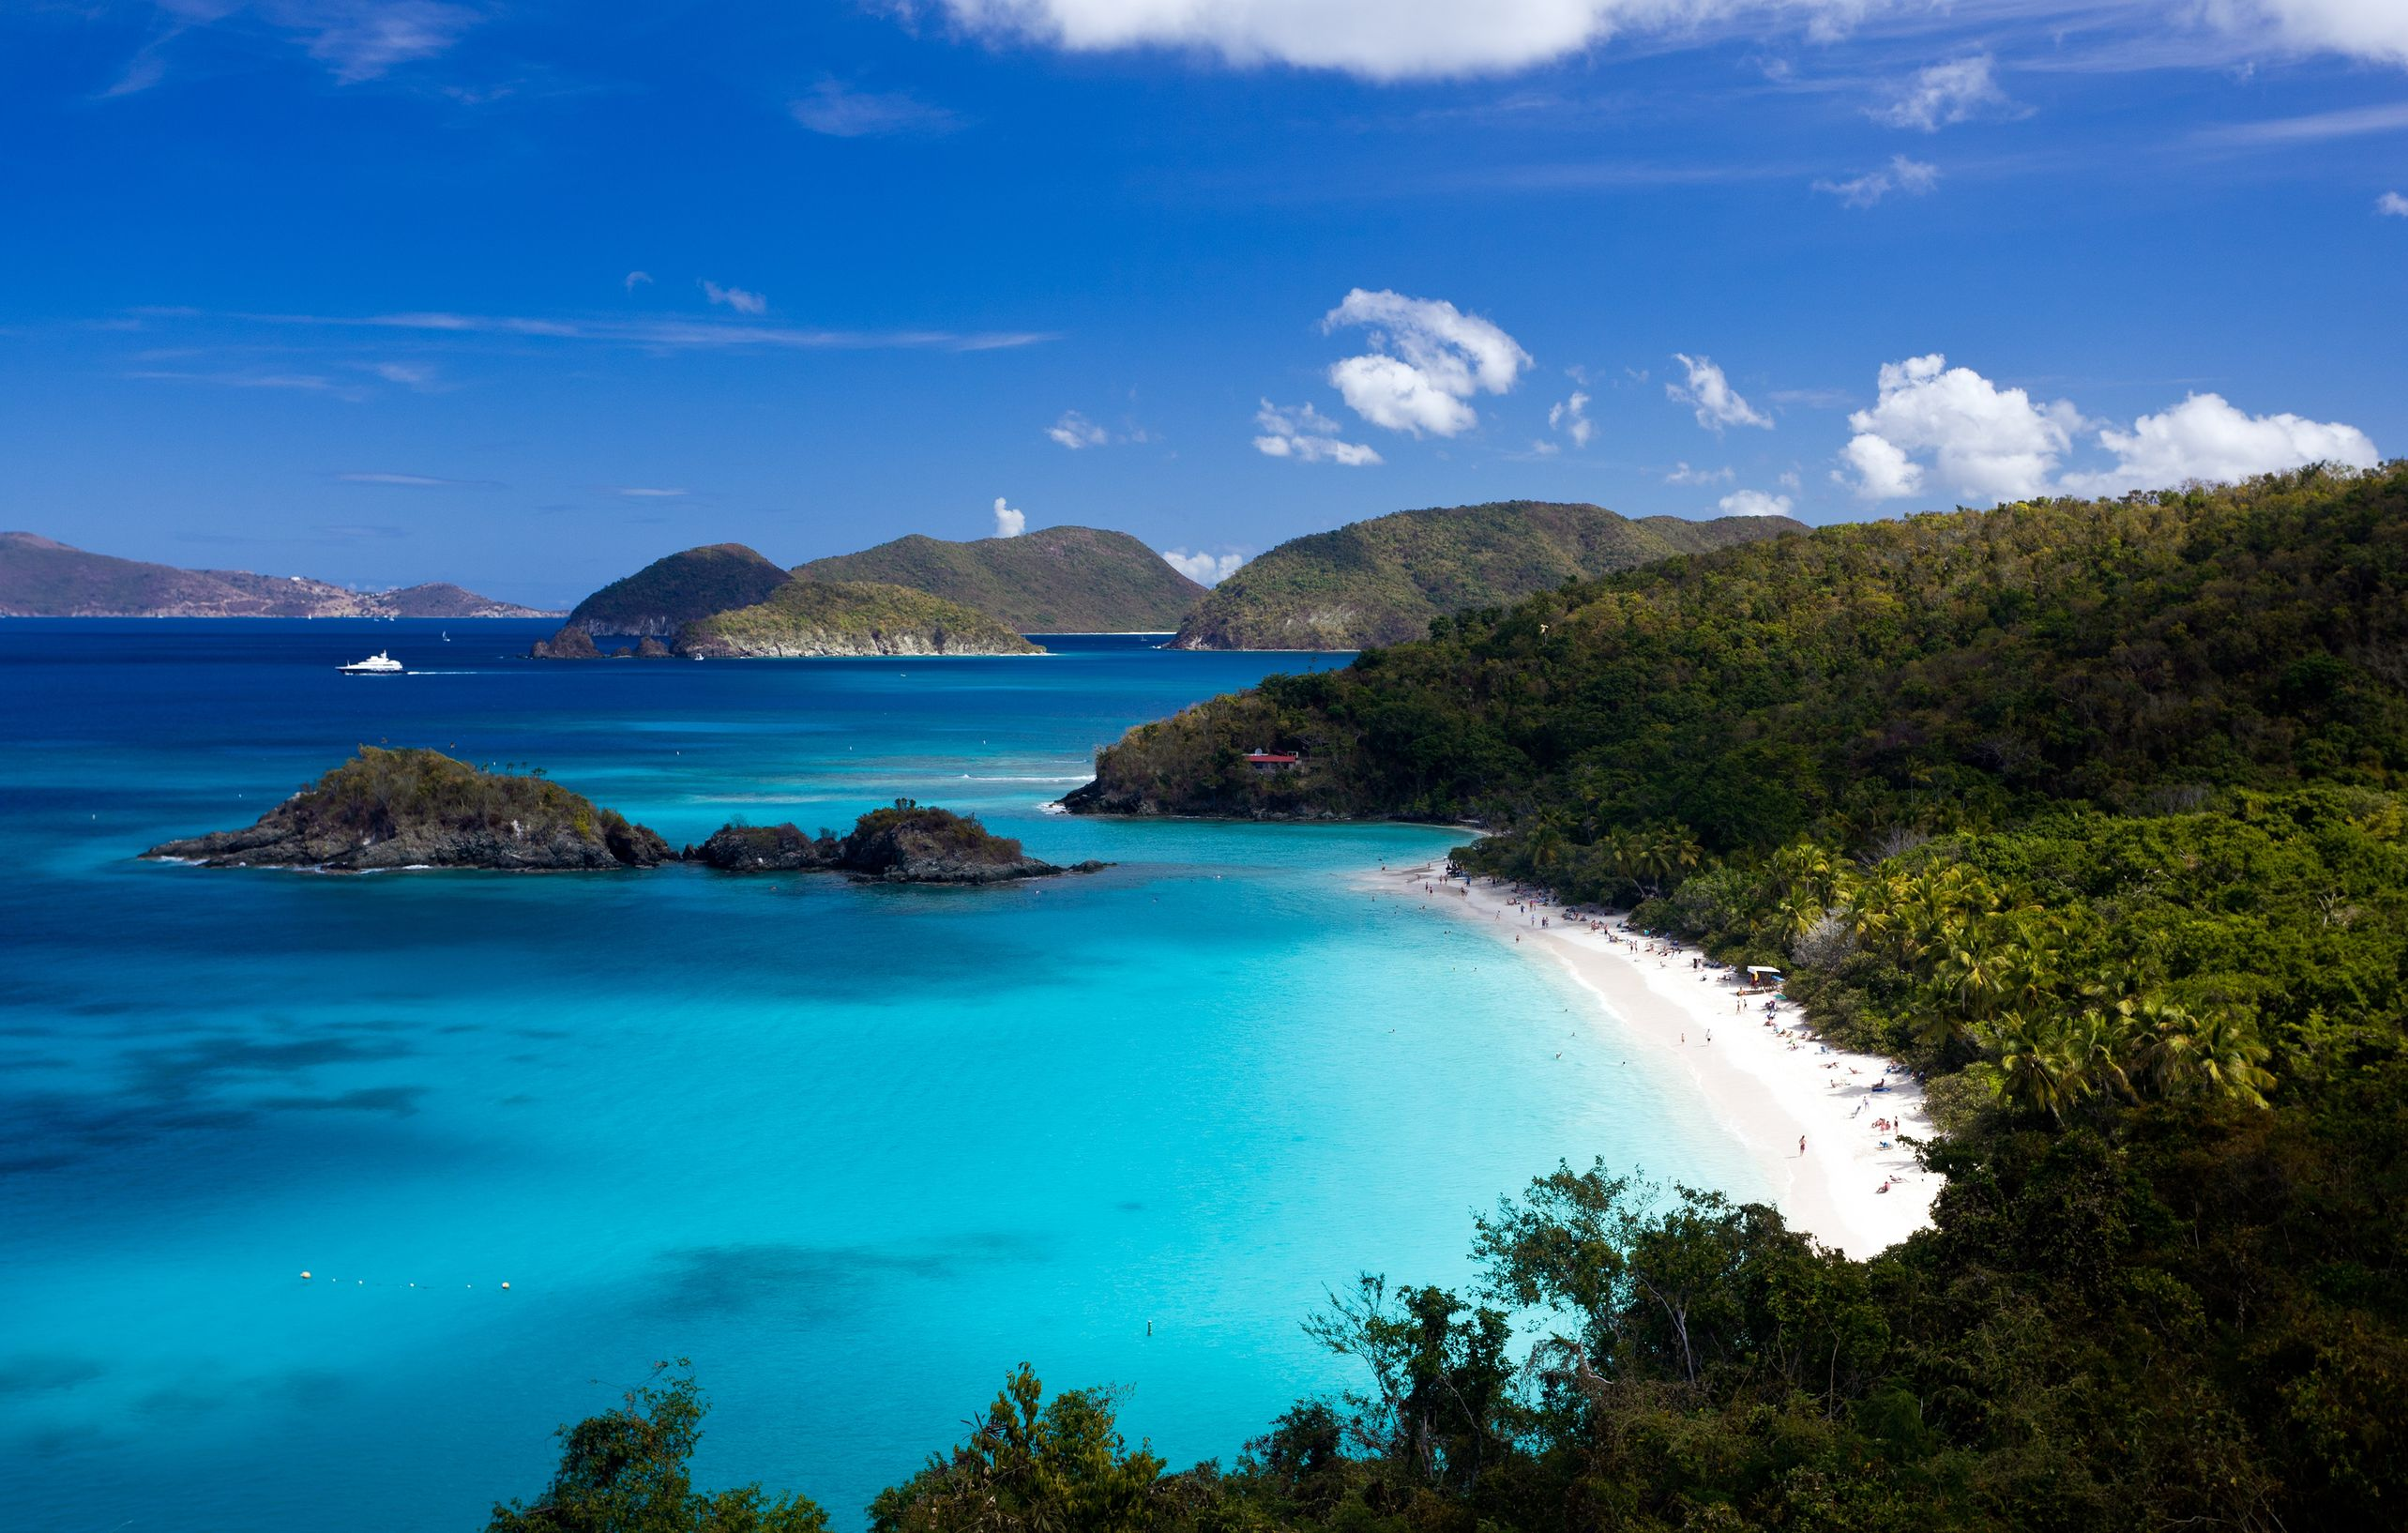 caribbean blue water bay 123rf